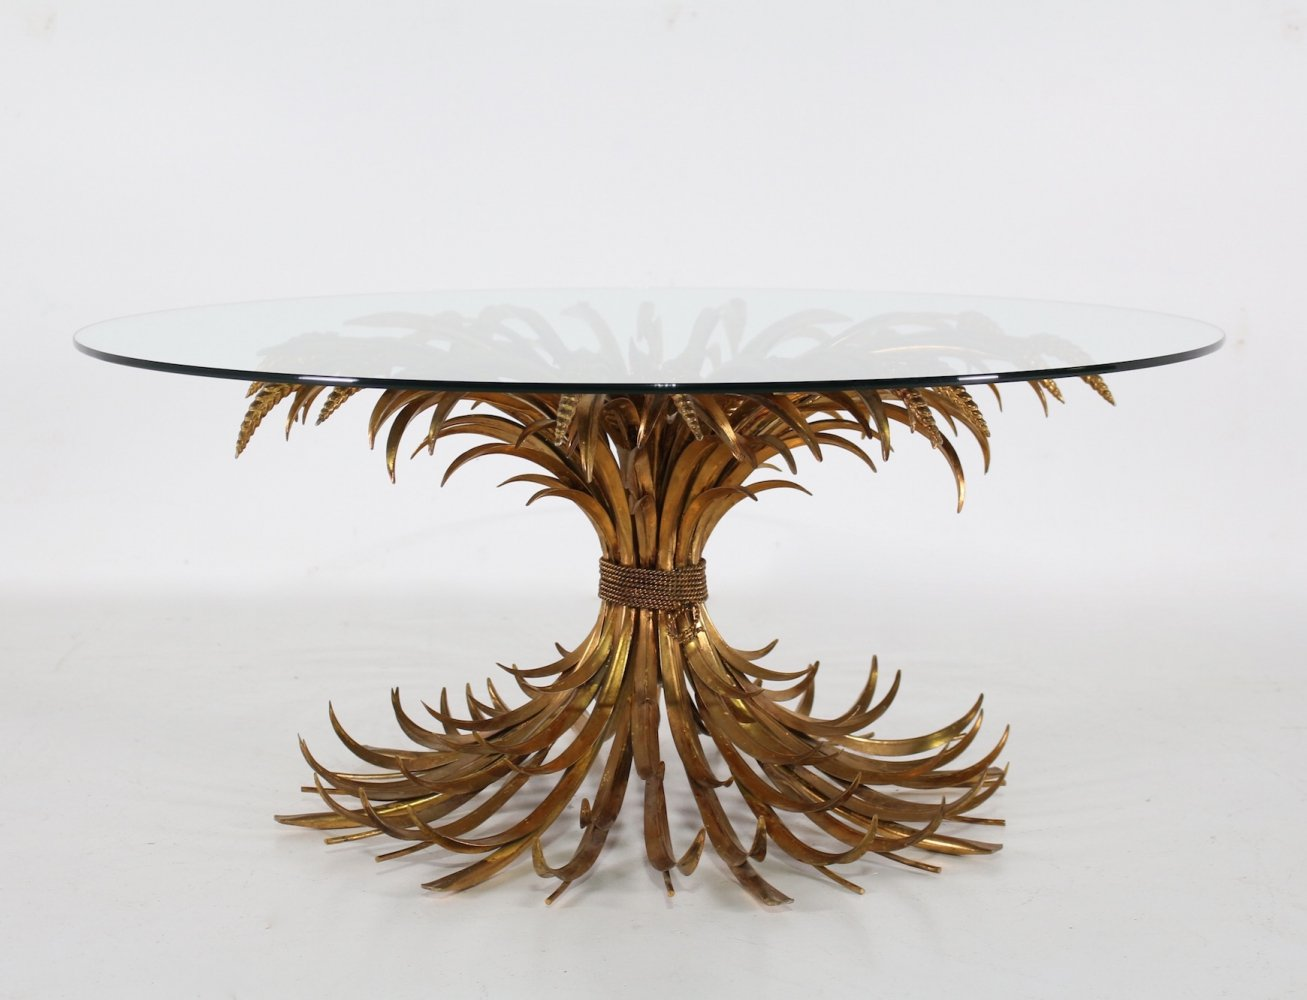 Gilt metal sheaf of wheat / Coco Chanel coffee table